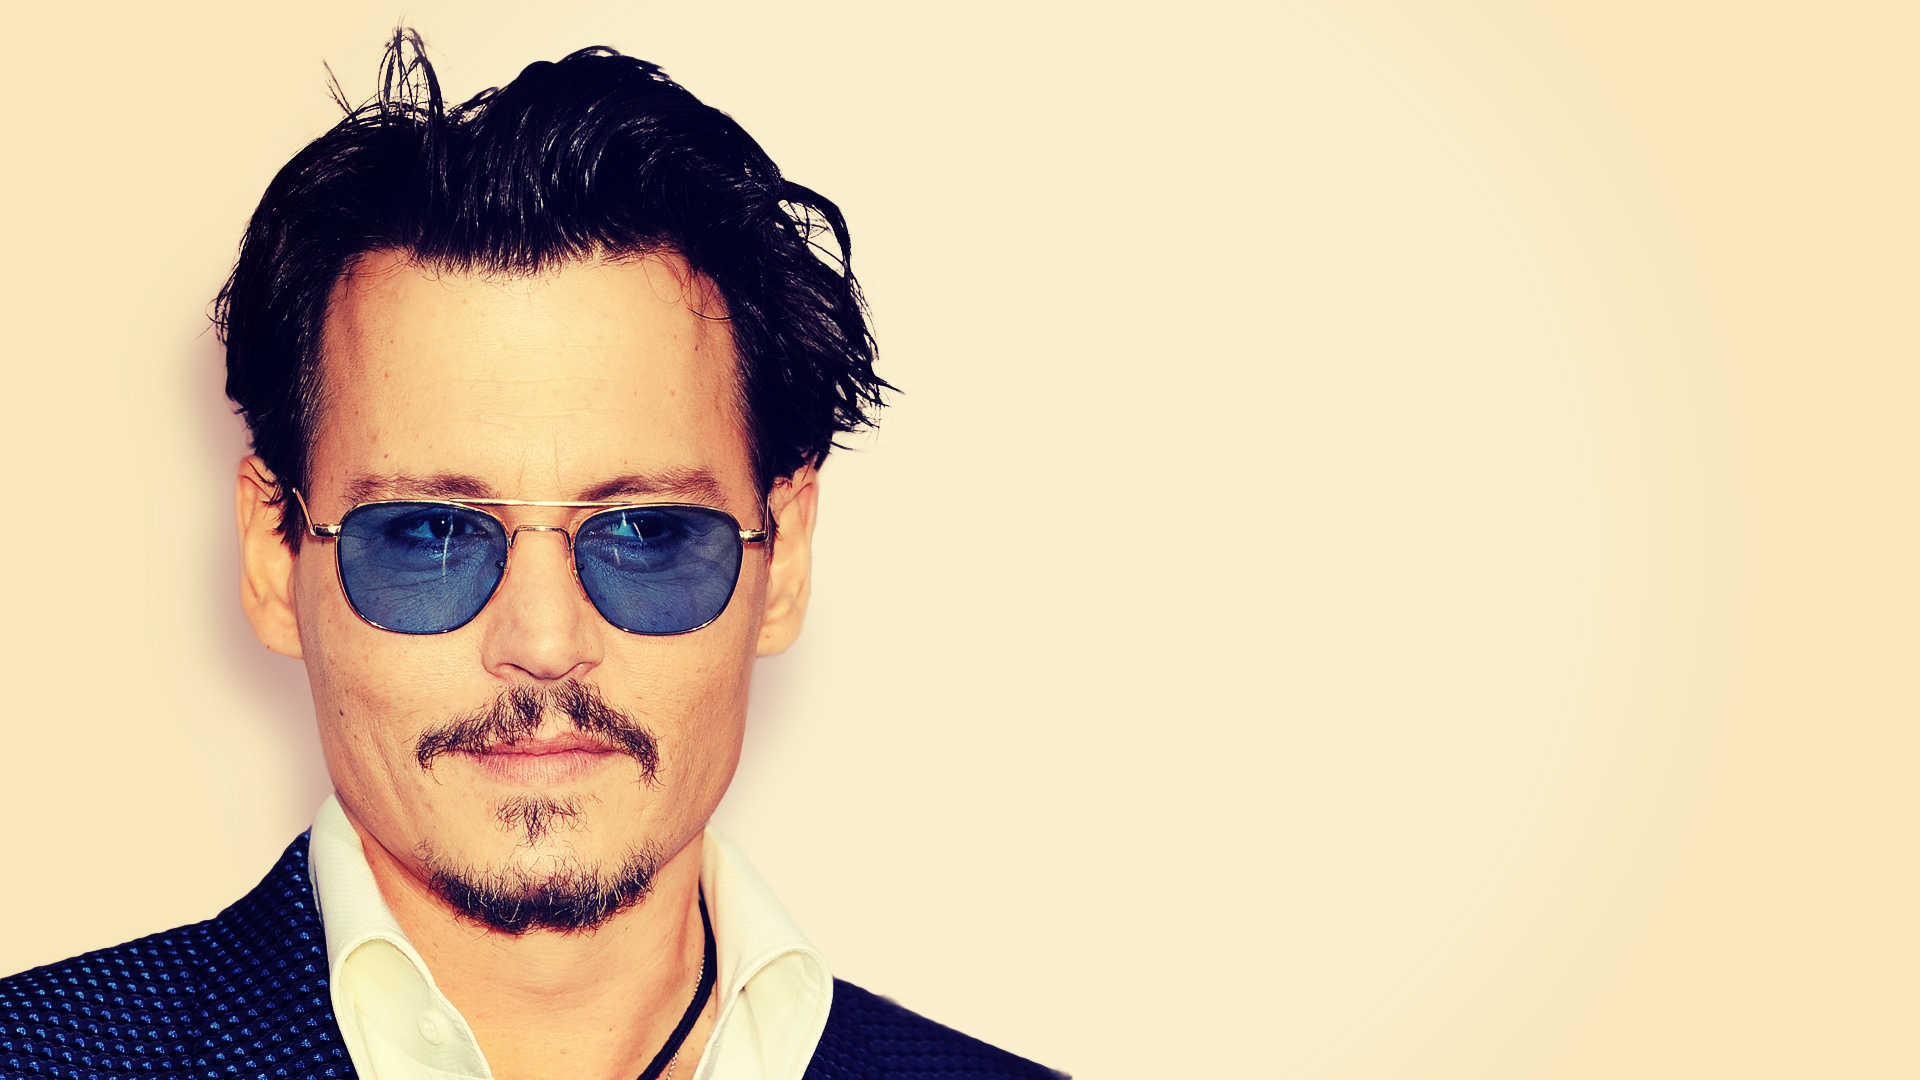 Johnny Depp full hd wallpapers